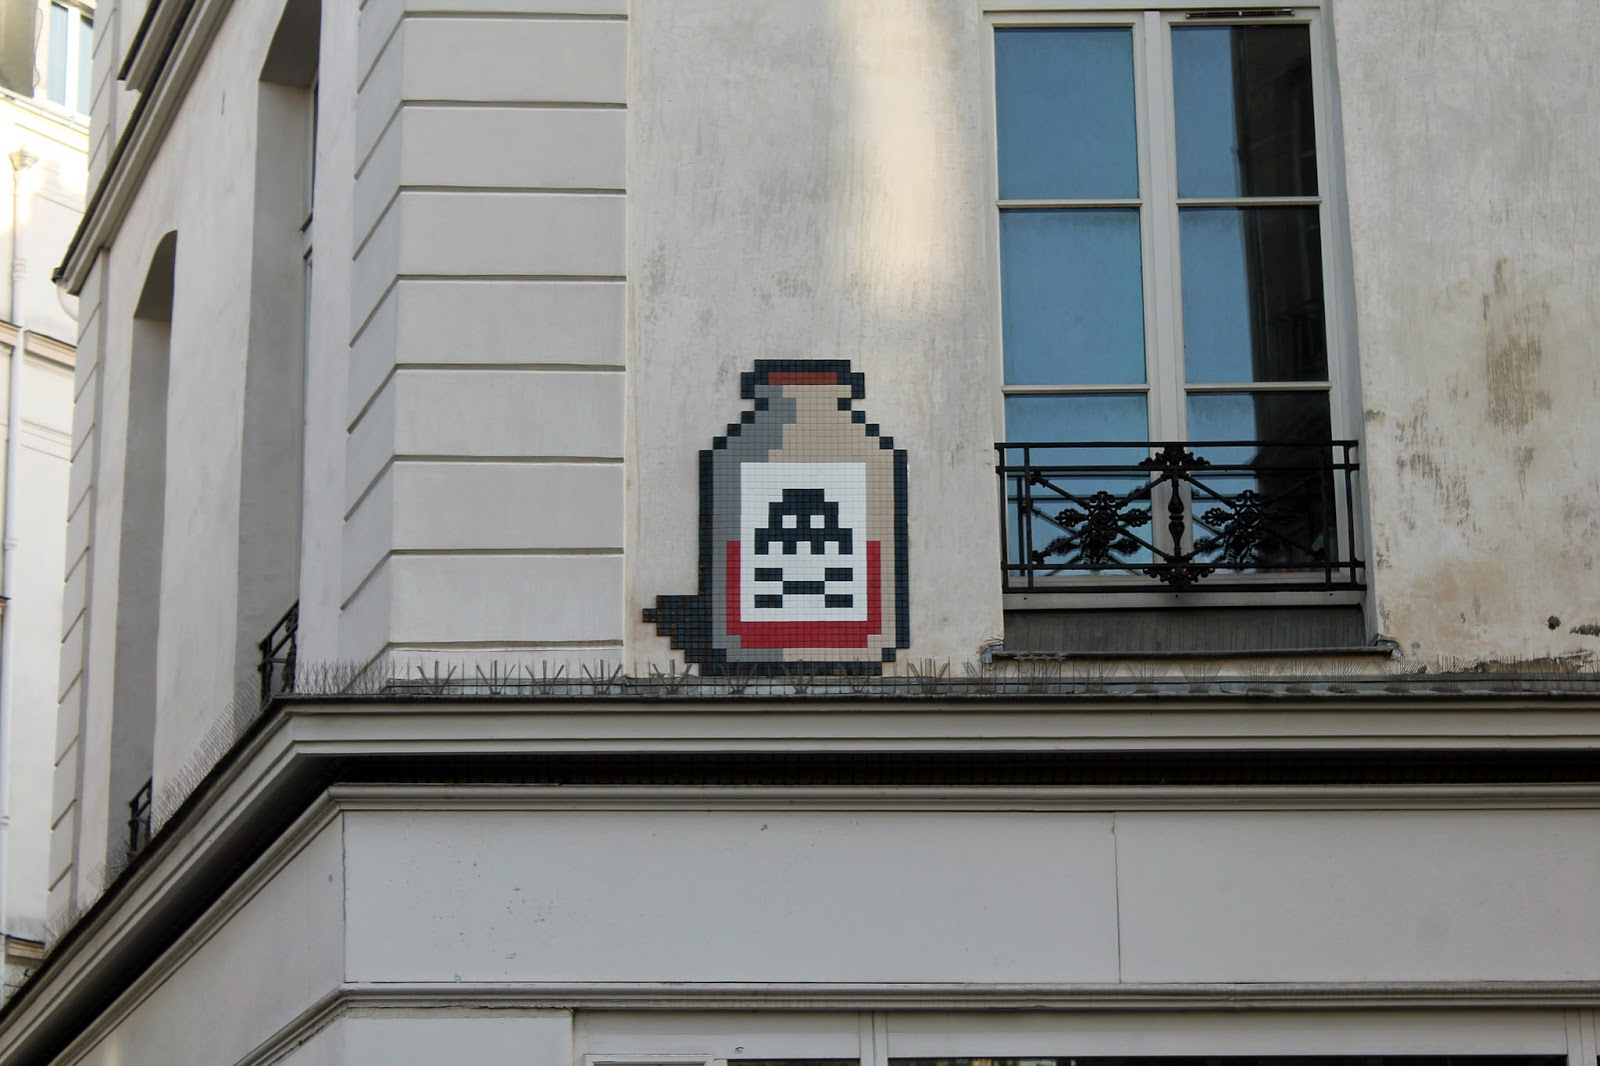 invader-a-new-invasion-in-paris-france-11